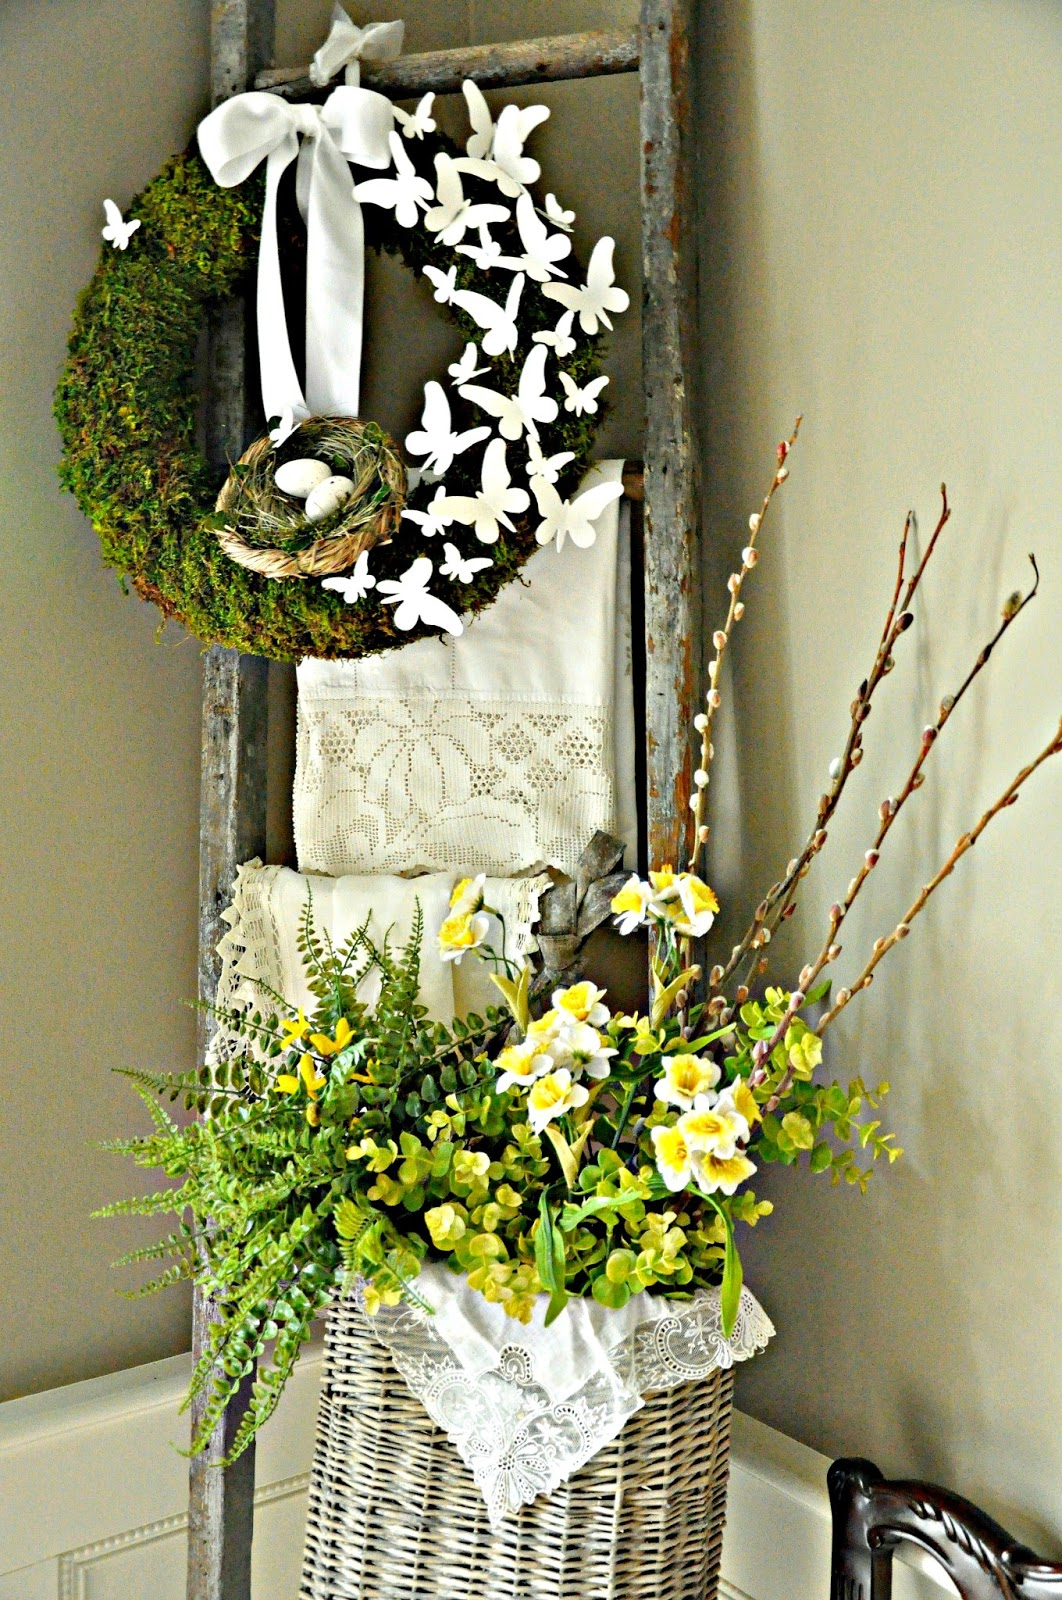 Diy Spring Decor: Serendipity Refined Blog: Spring Break, Nesting And A Moss And Butterfly Wreath